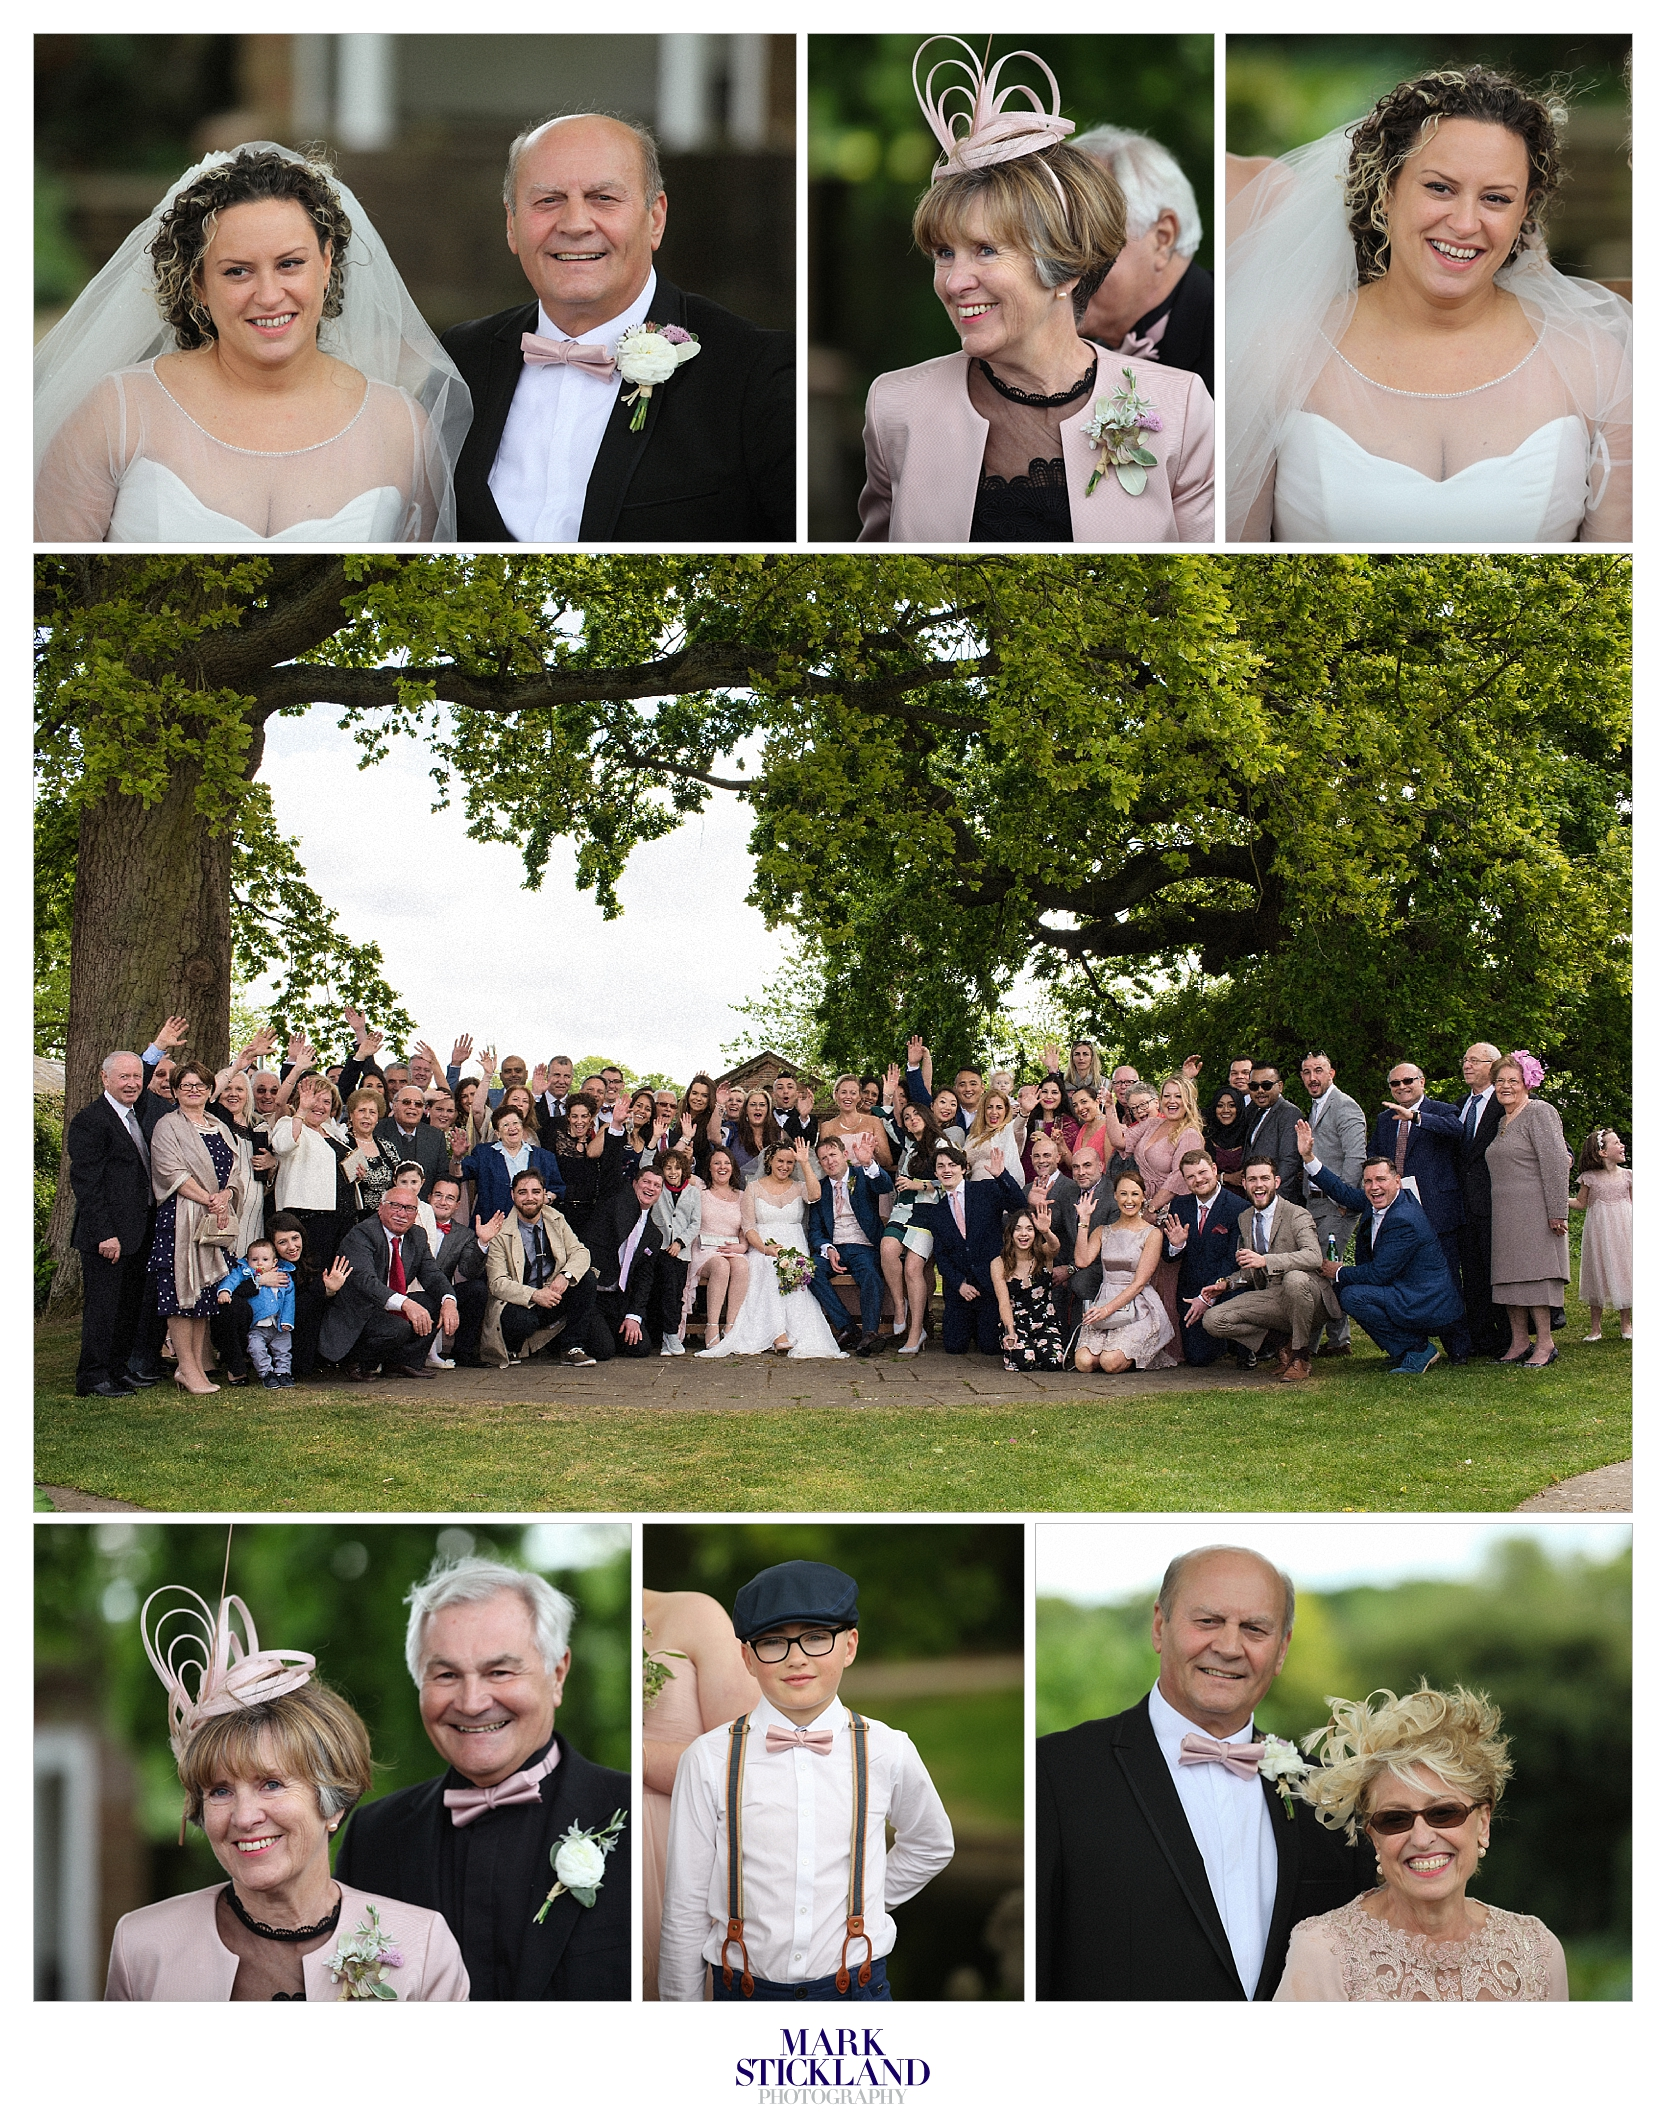 26.micklesfield hall_sarratt_wedding_mark stickland photography